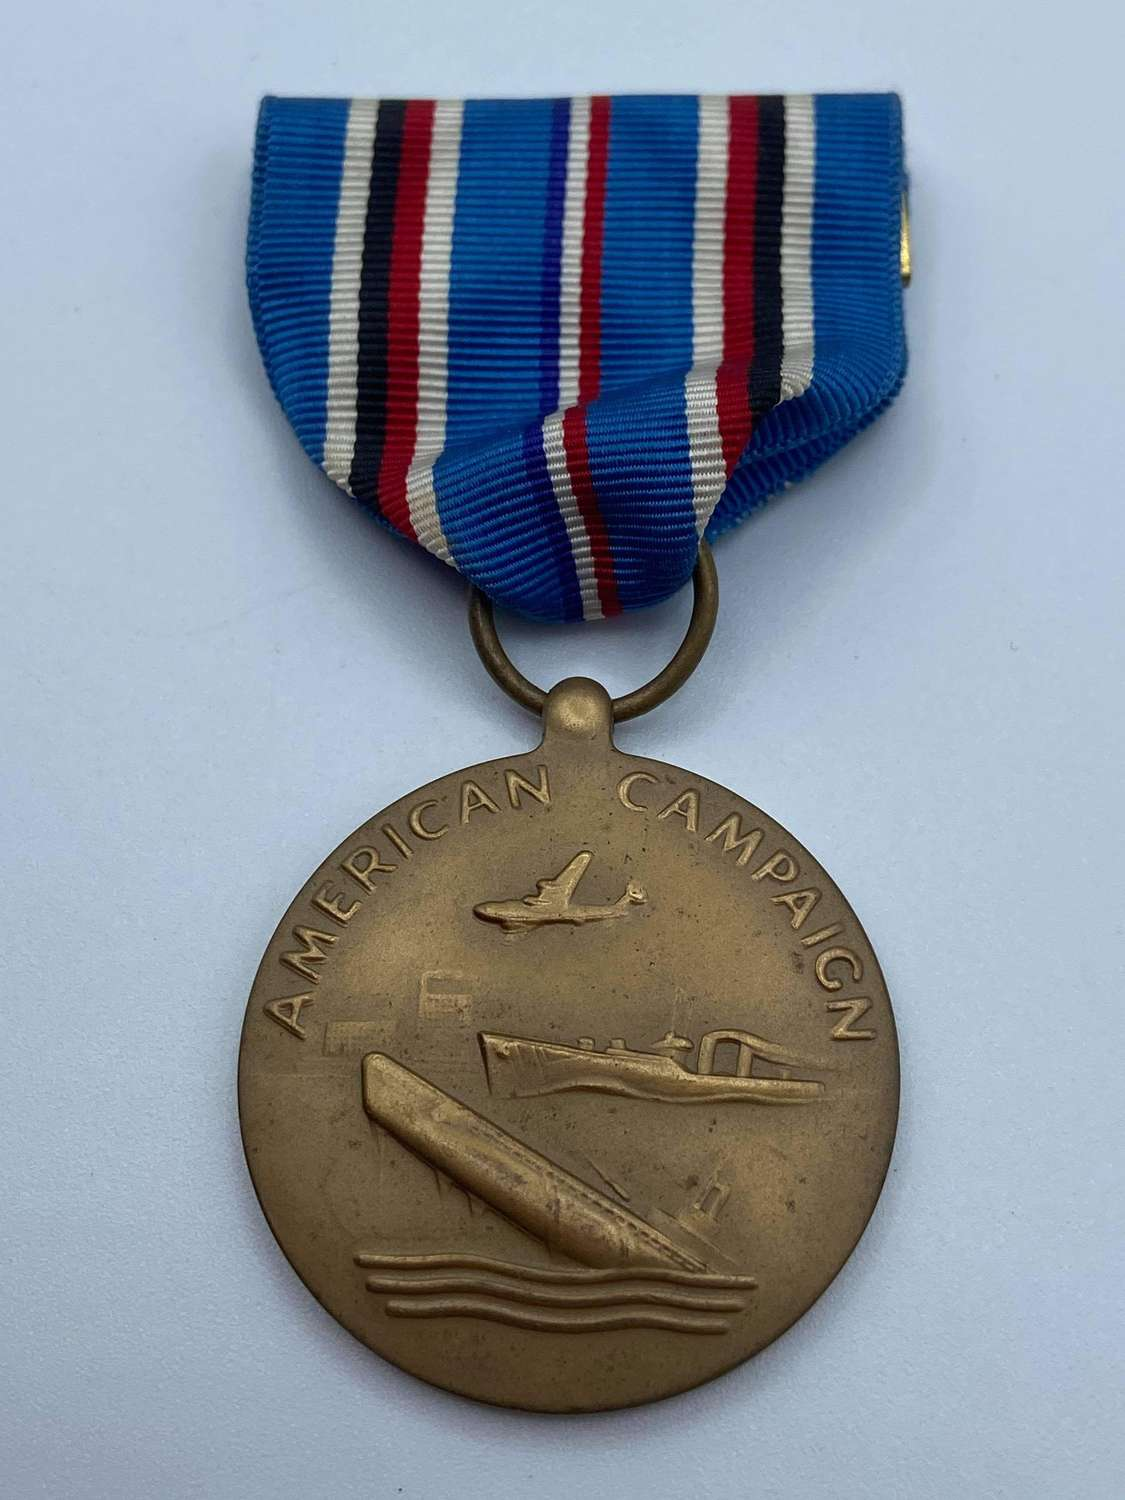 WW2 United States Campaign Medal 1941-1945 American Campaign